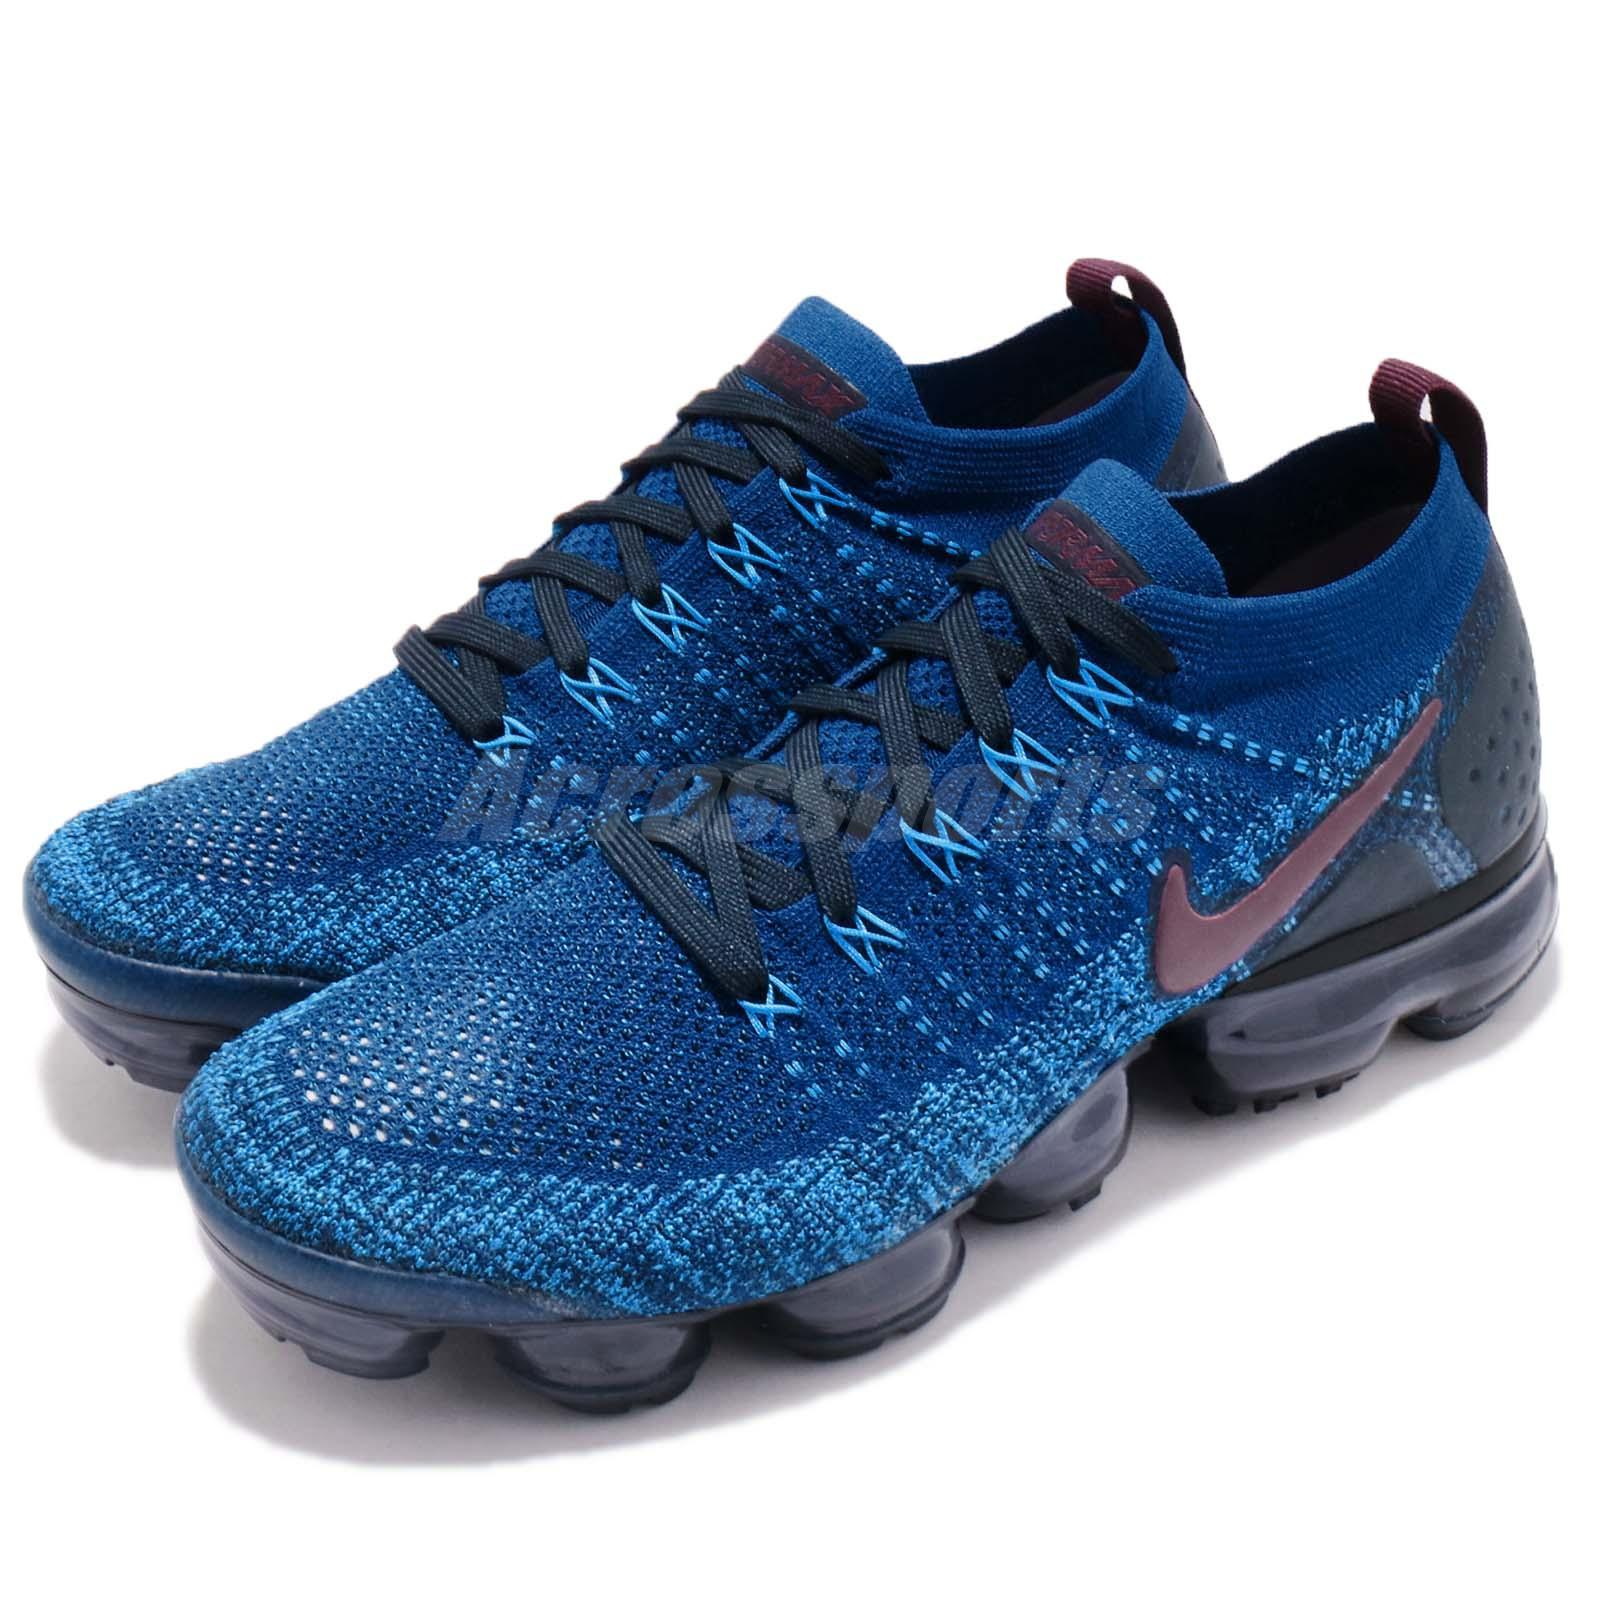 on sale cc23b ab83f Details about Nike Air Vapormax Flyknit 2 II Gym Blue Navy Men Running Shoe  Sneaker 942842-401